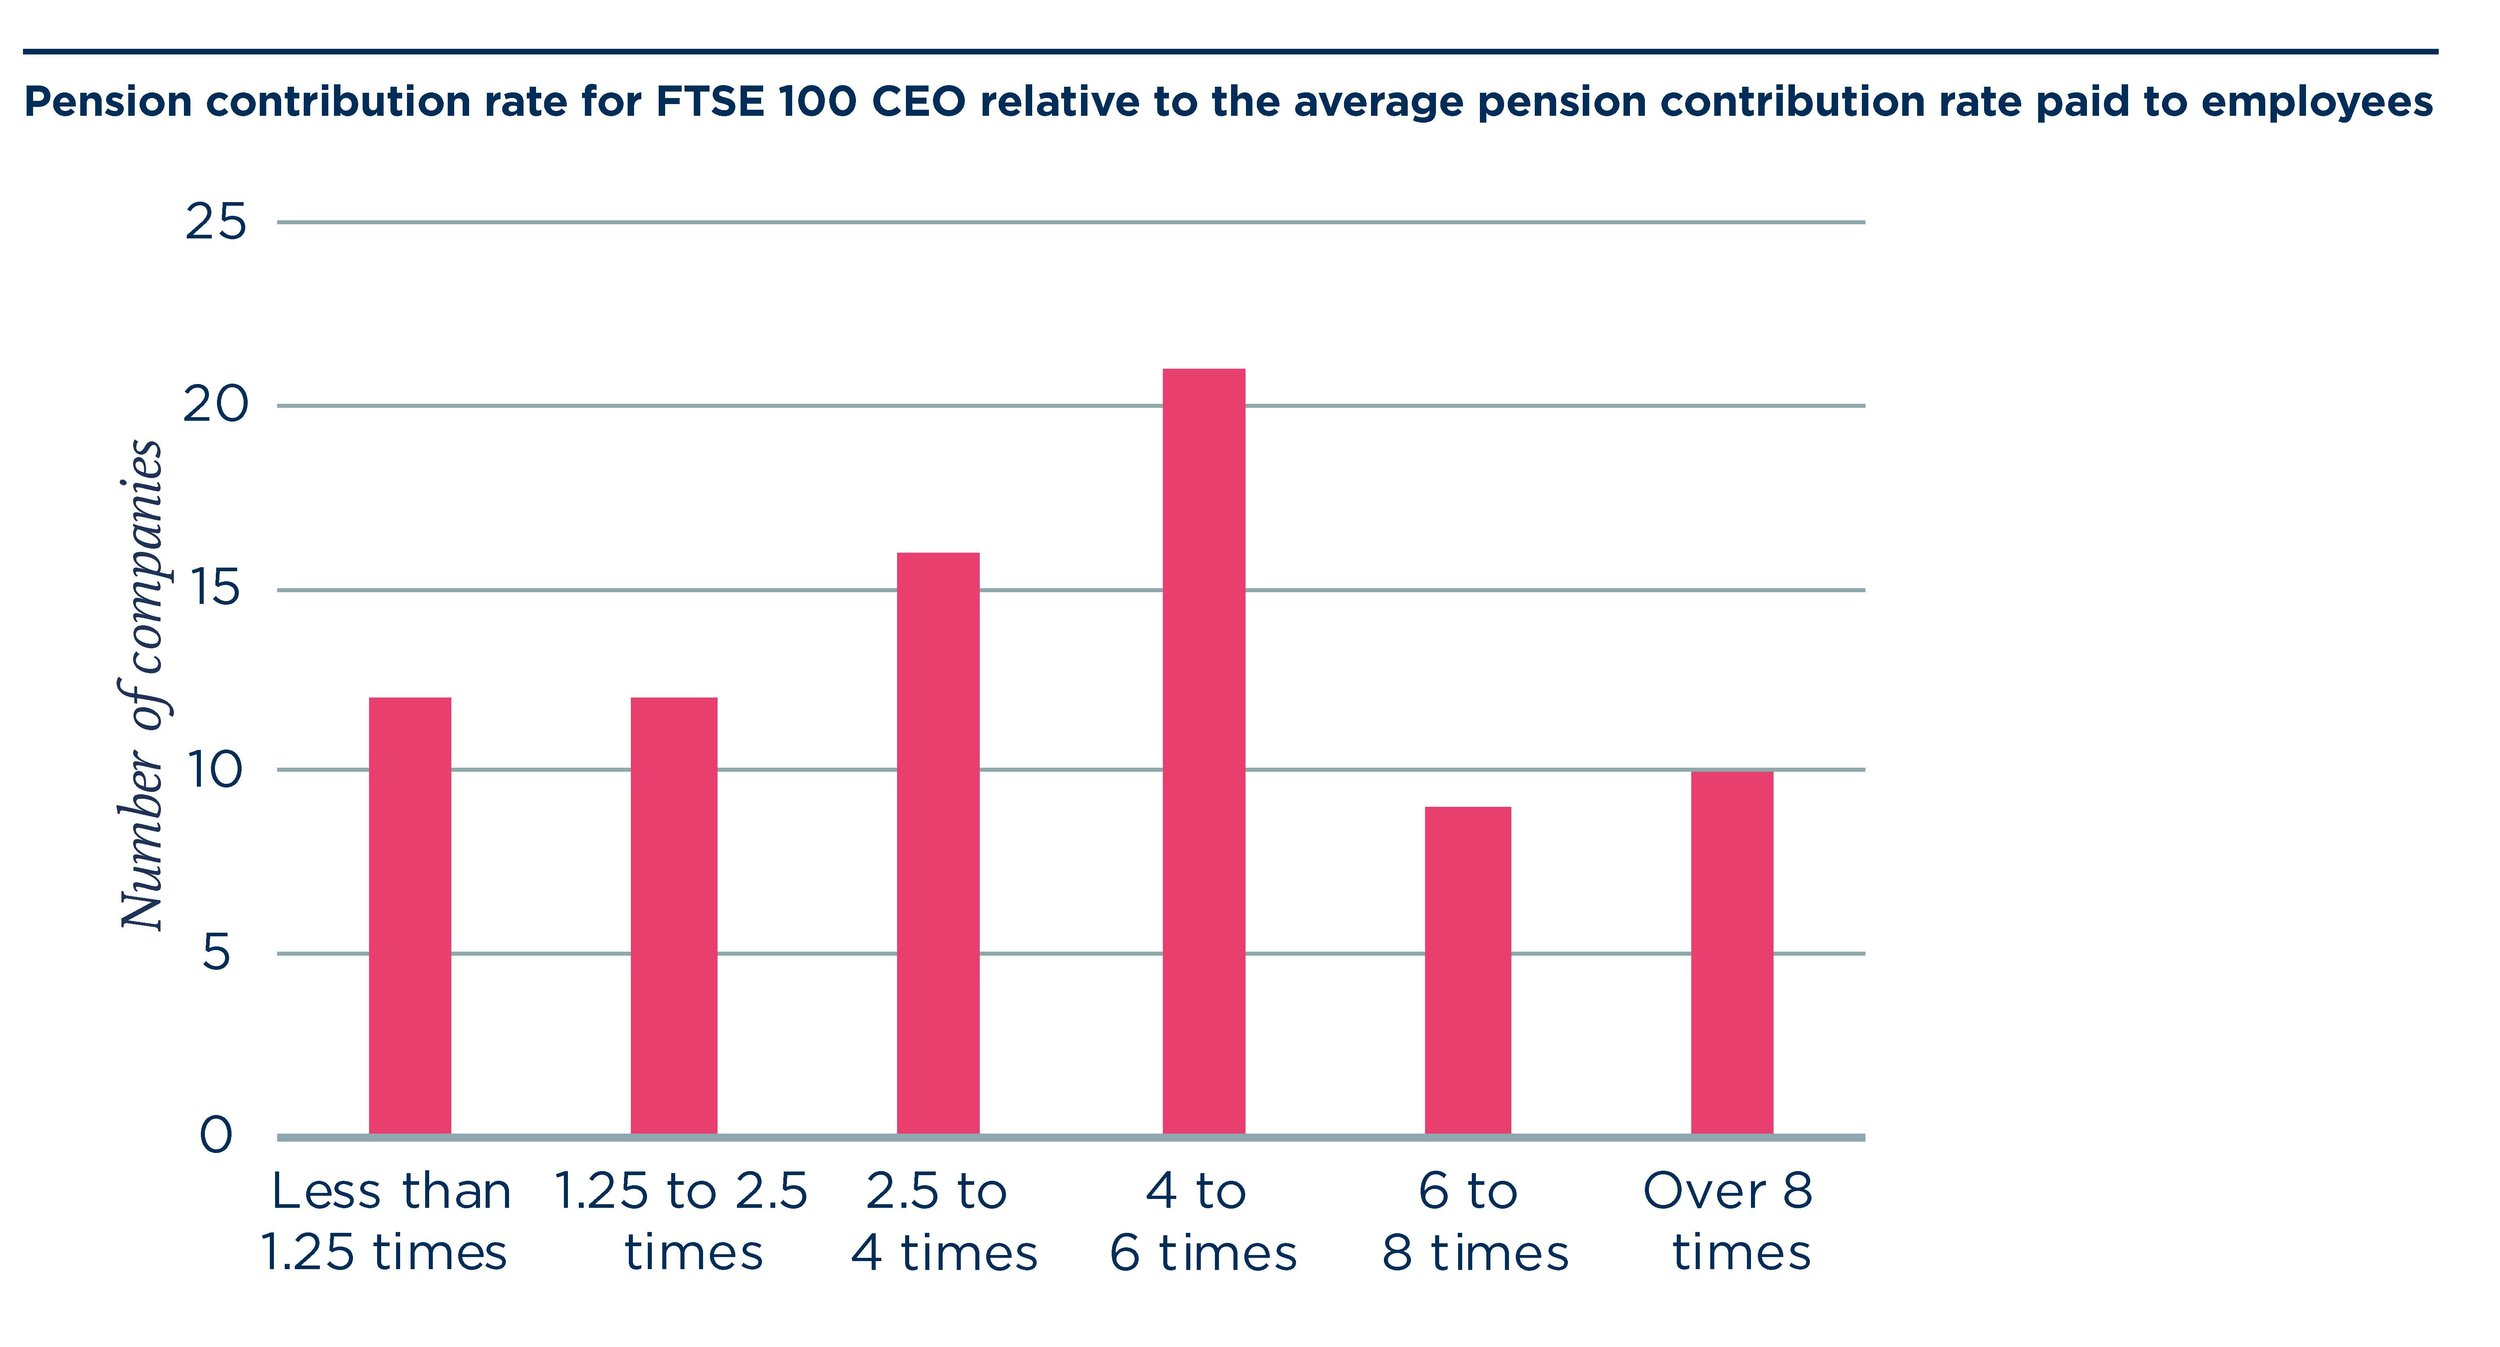 Accounting for Pensions report, 2019 Lane, Clark & Peacock (LCP)